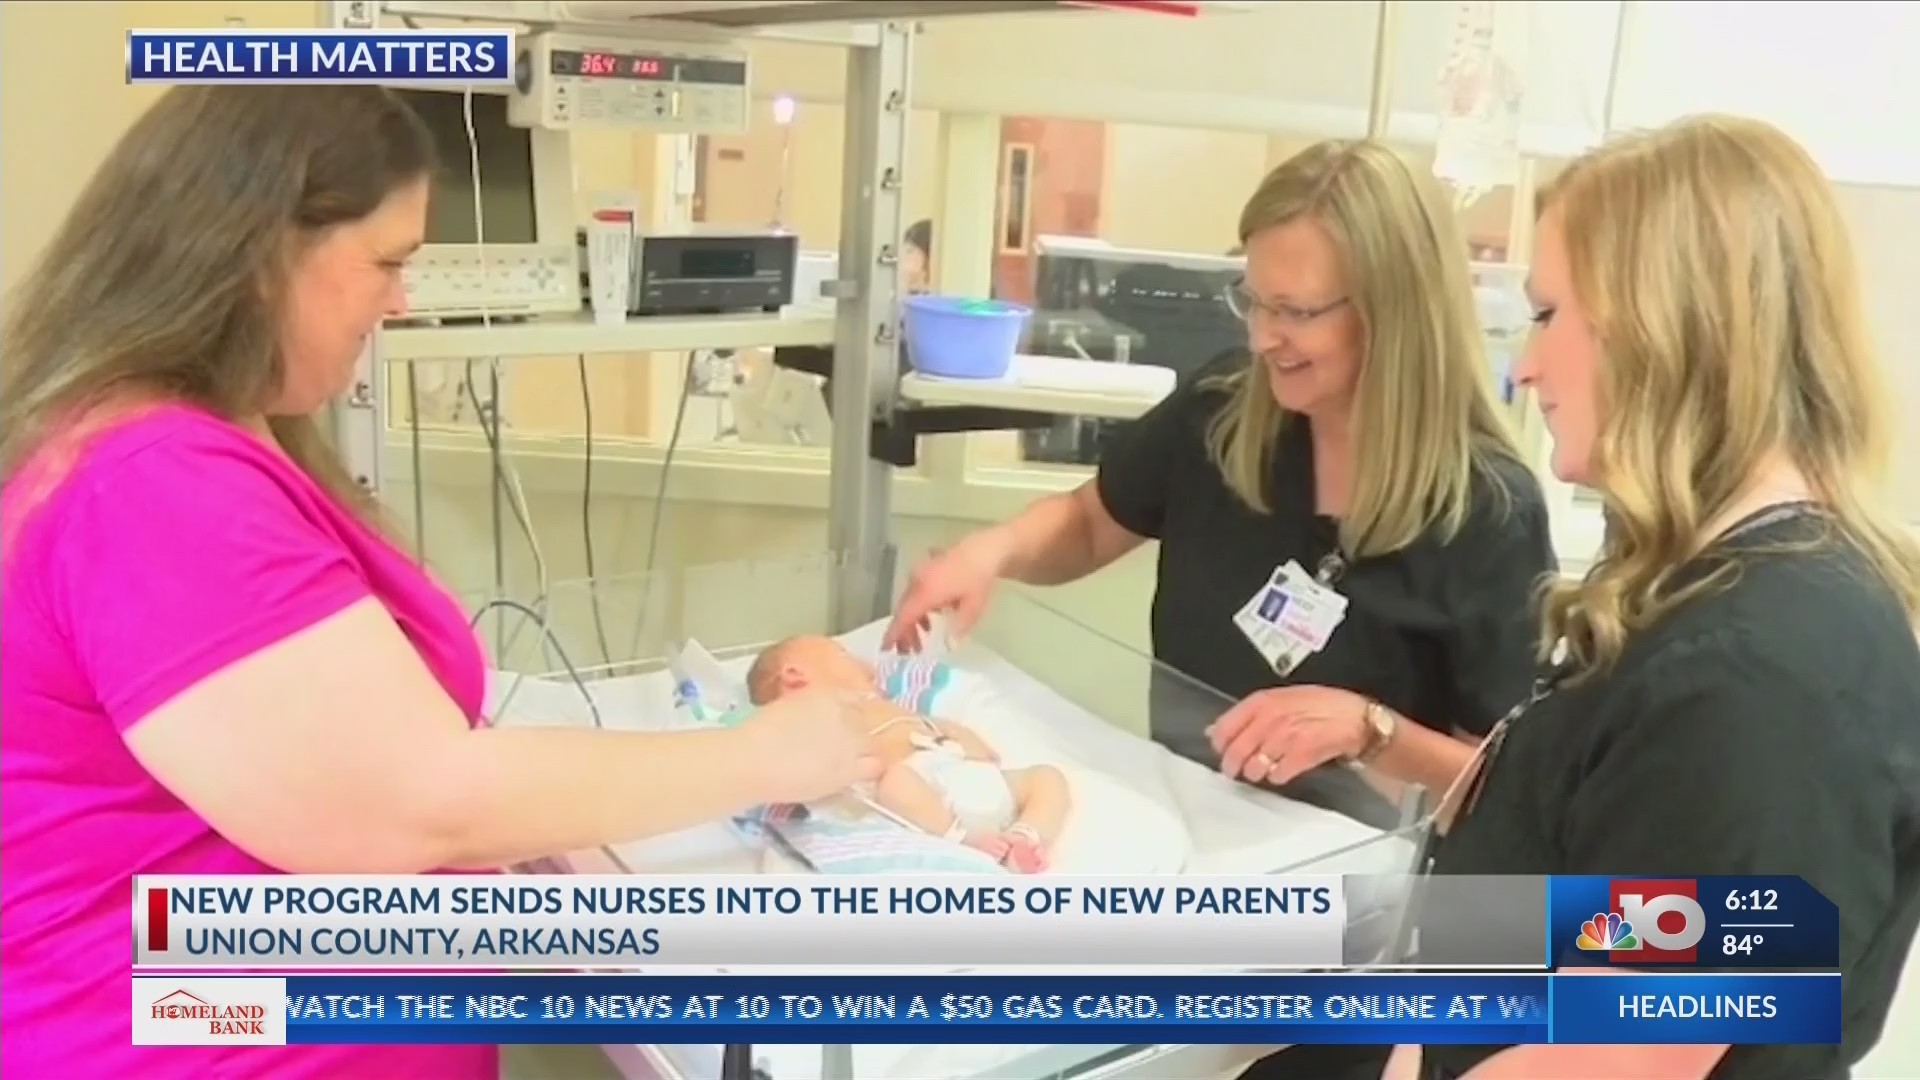 New hospital program will offer nurse home visits to parents of newborn babies